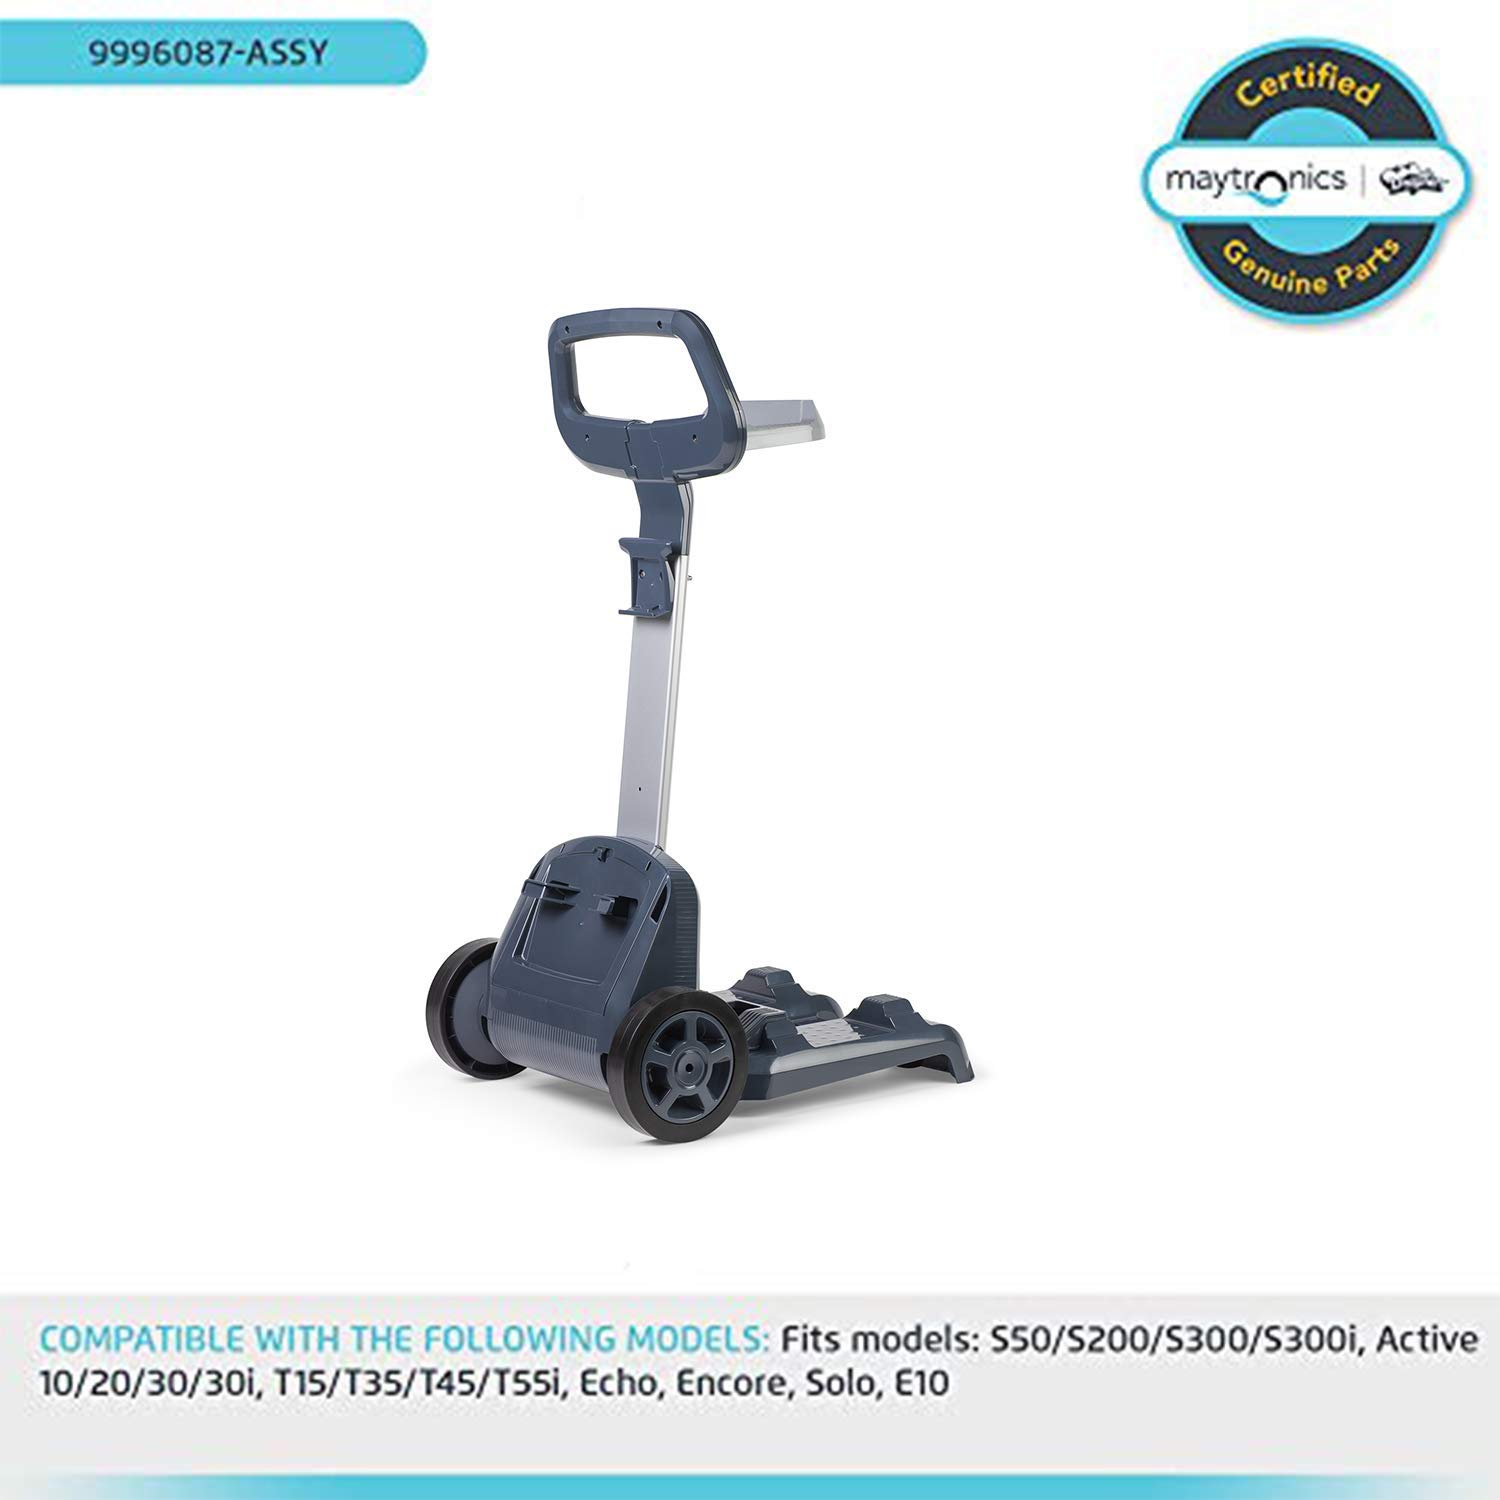 Dolphin Robotic Pool Cleaner Caddy by Dolphin